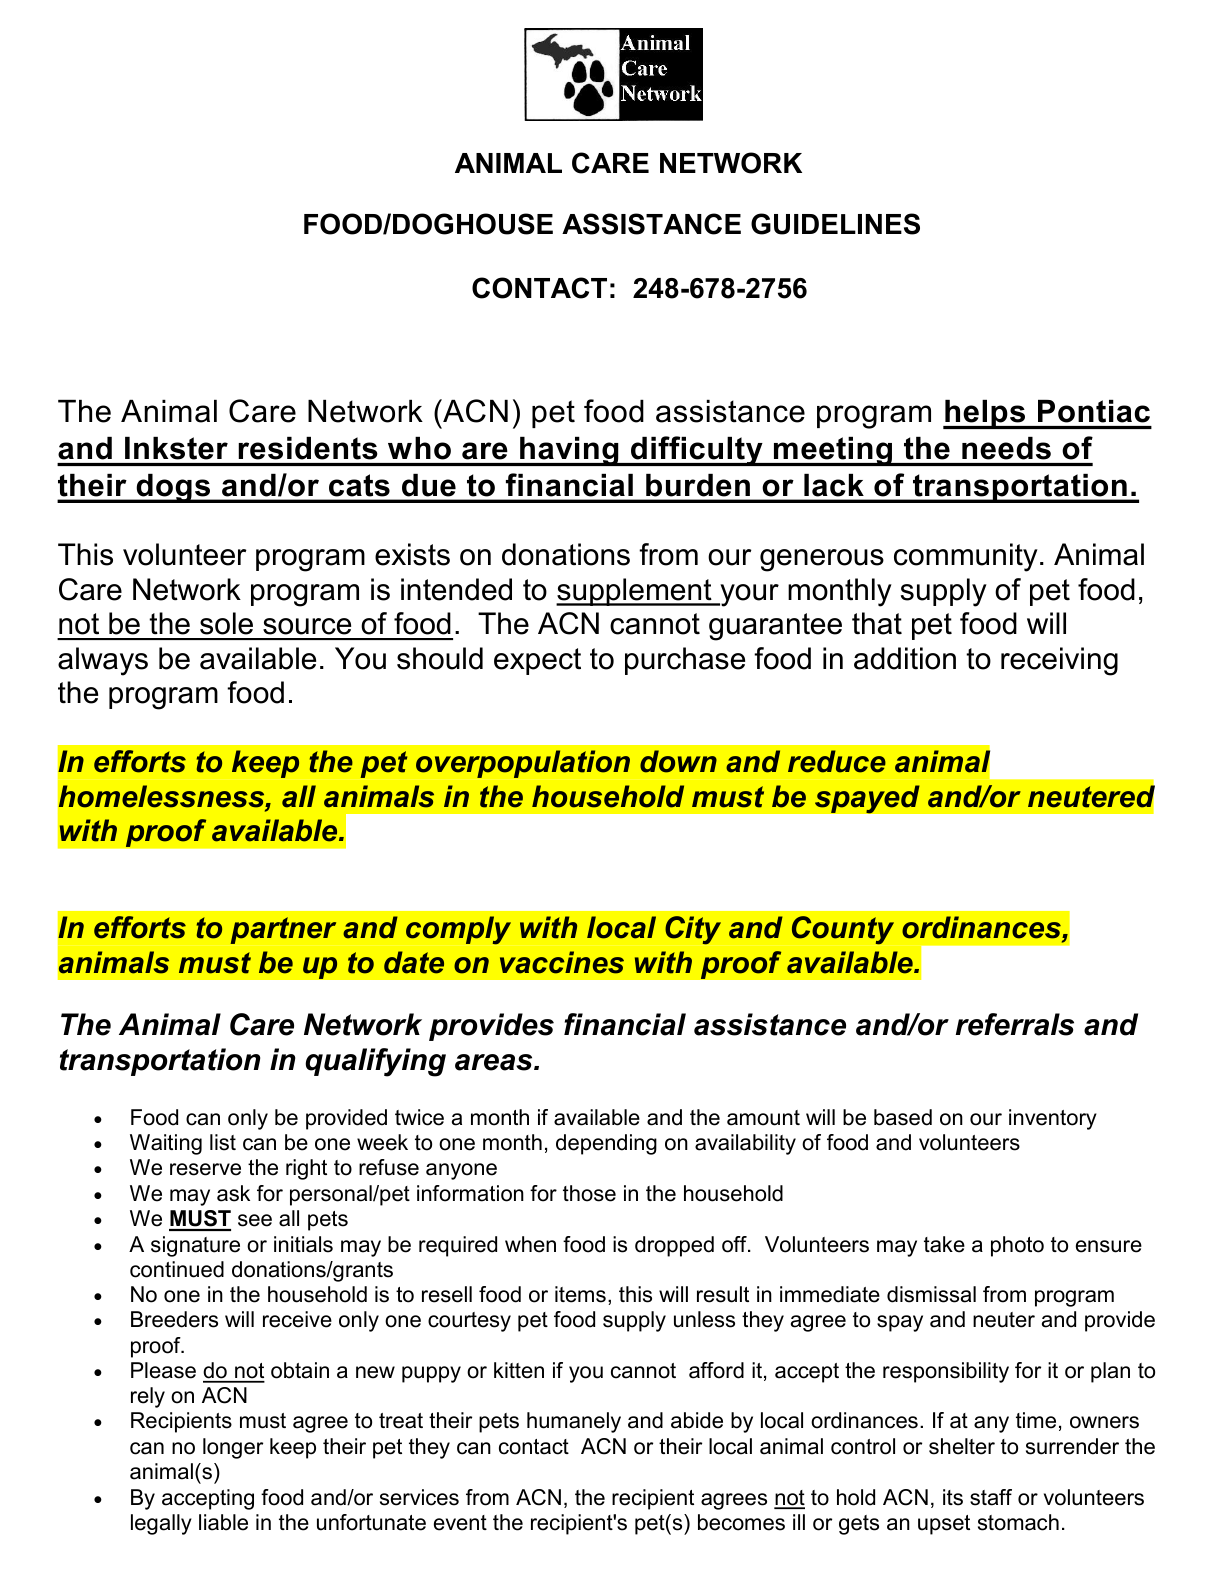 ACN FOOD ASSISTANCE GUIDELINES 2011 full page